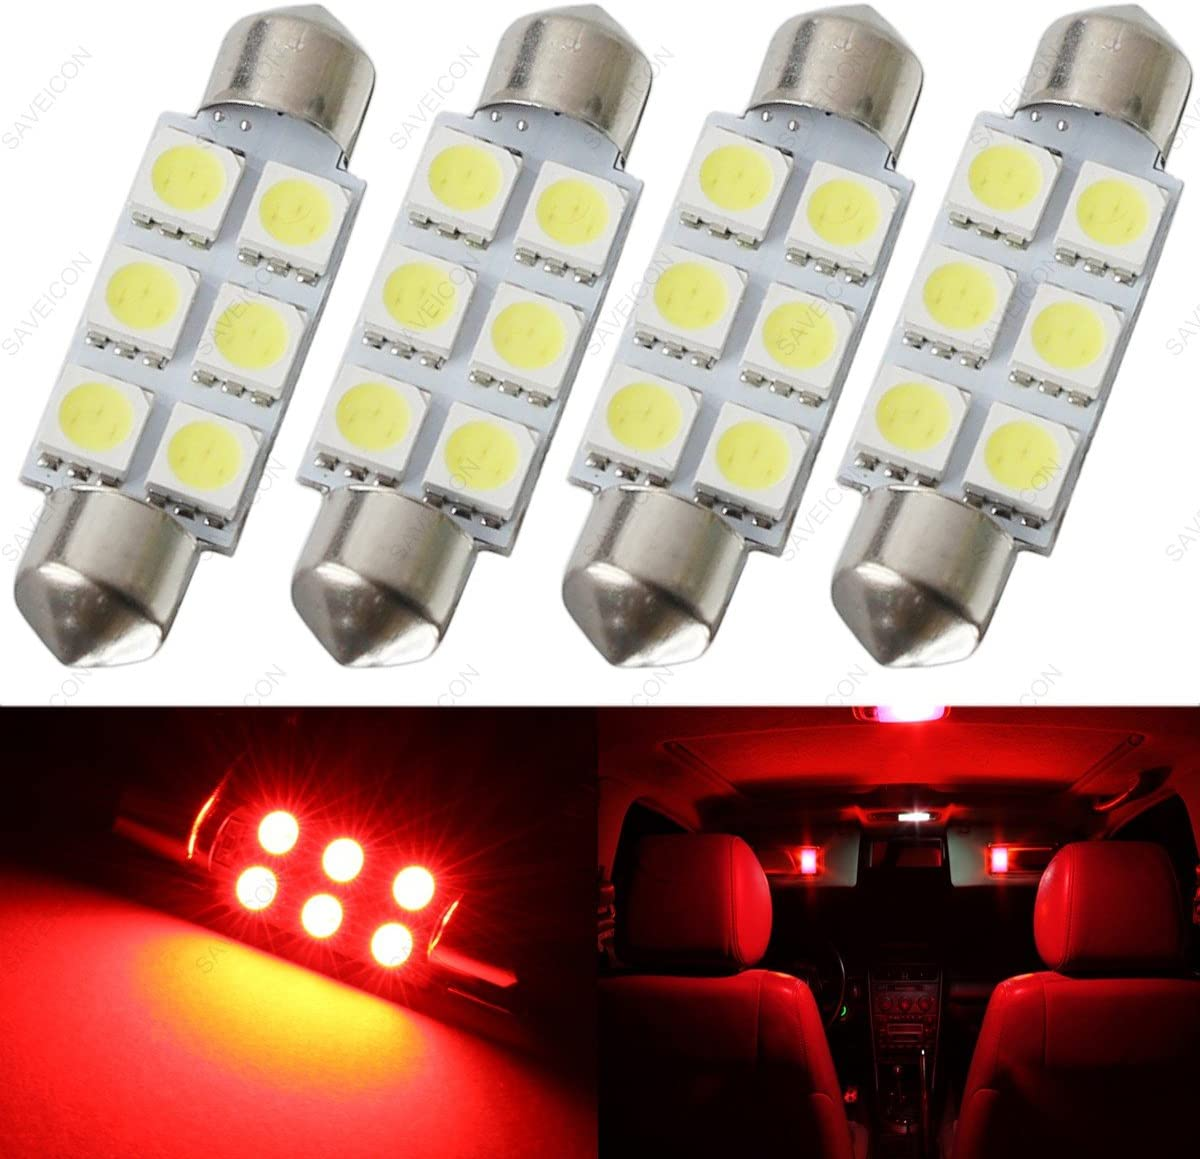 SAWE - 44MM 6-SMD 5050 Festoon Dome Map Interior LED Light Bulbs Lamp For 6411 578 211-2 212-2 (4 pieces) (Red)